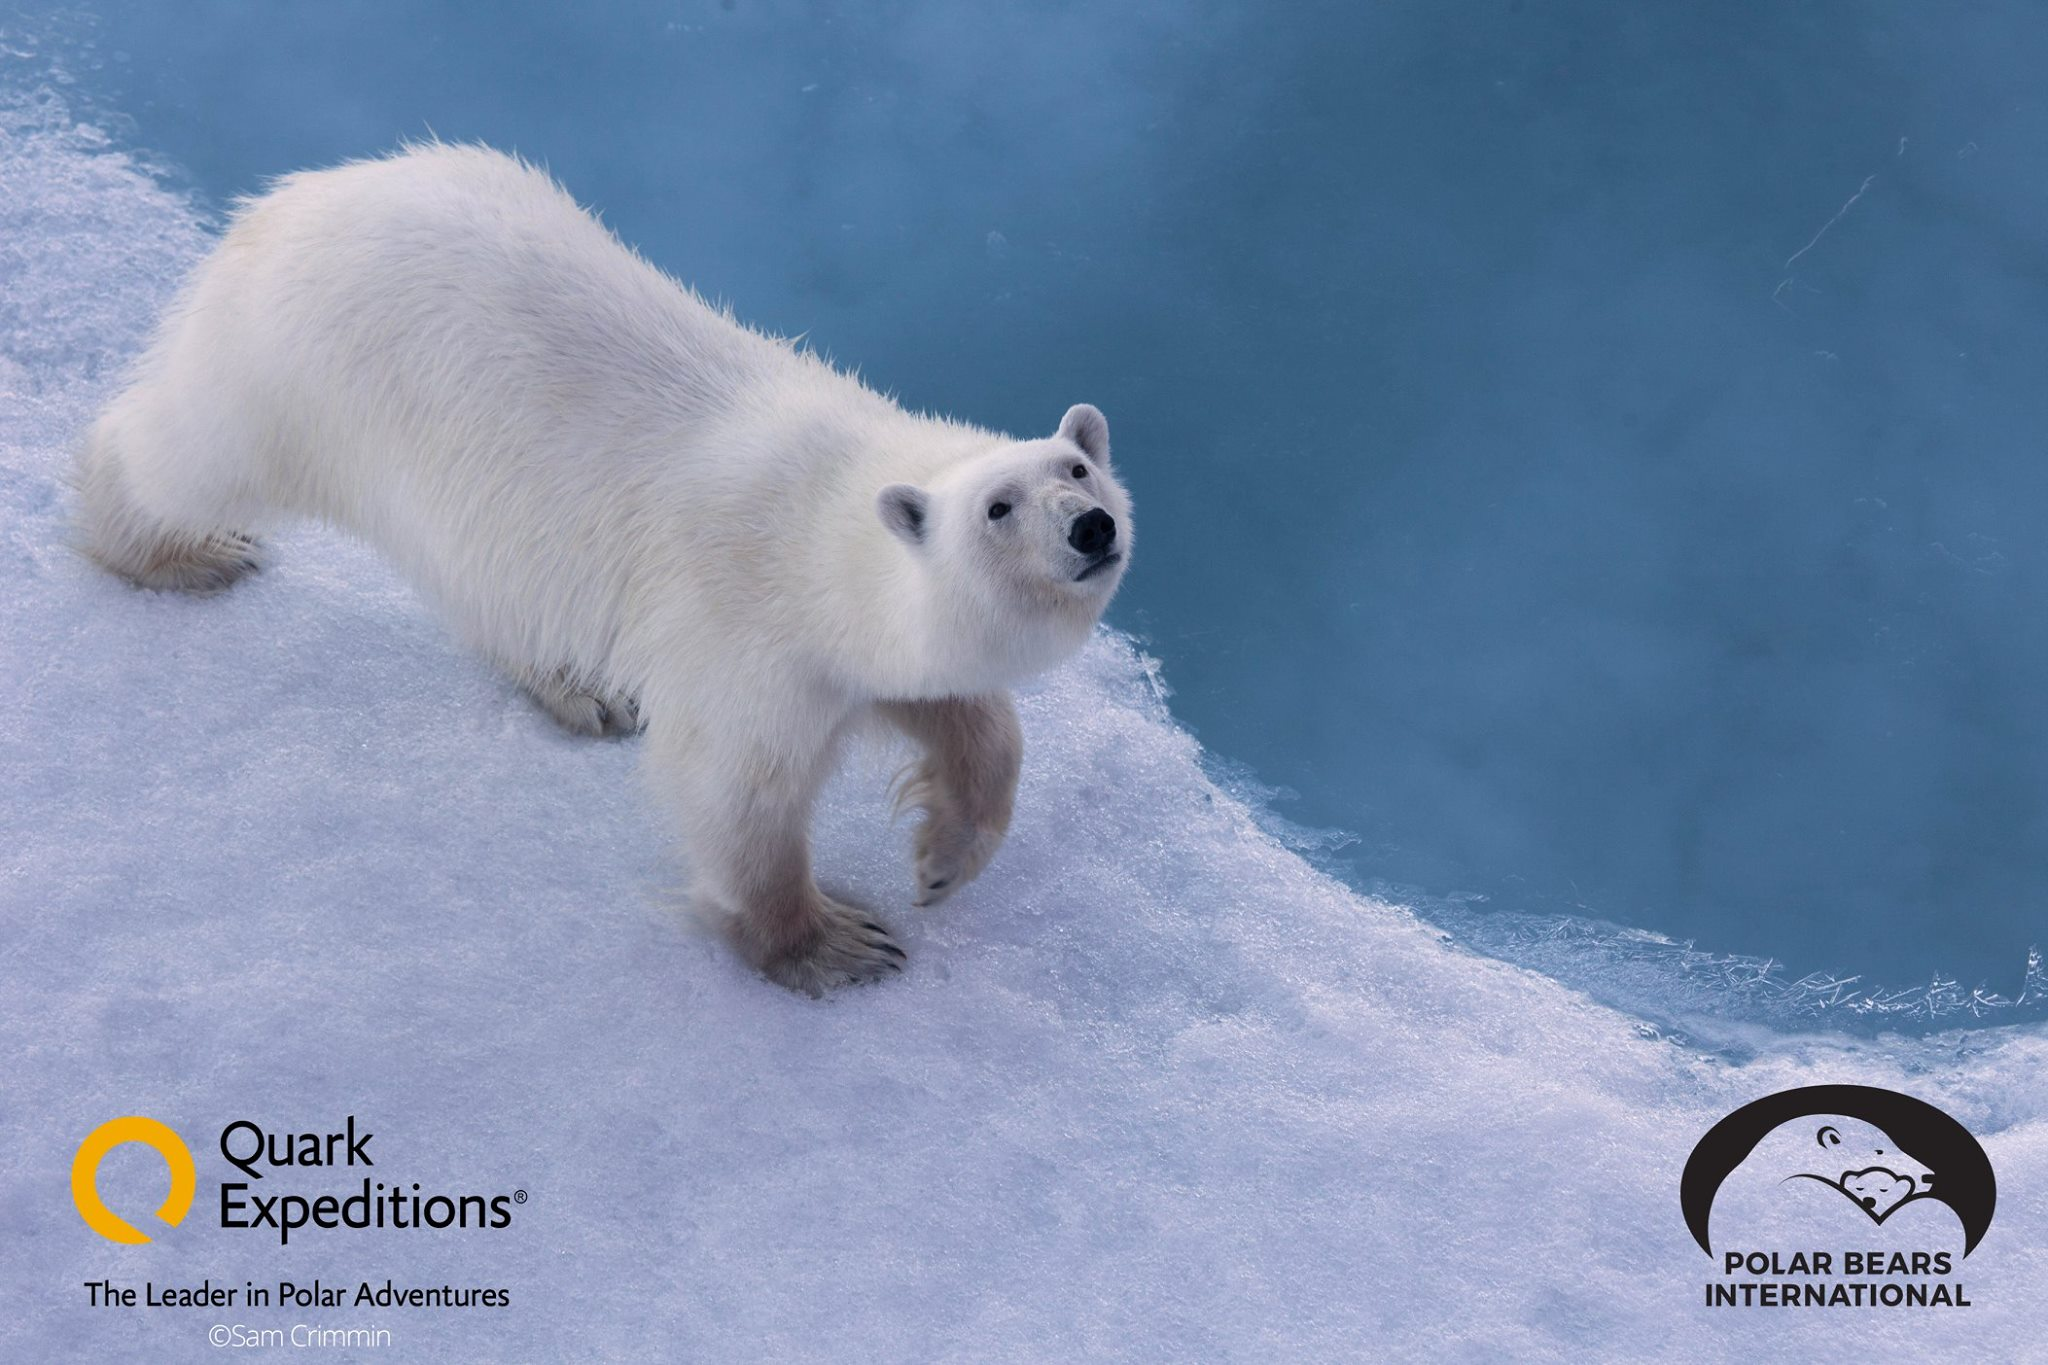 Join Polar Bears International experts en route to the North Pole with Quark Expeditions to learn more about polar bears in their natural habitat!